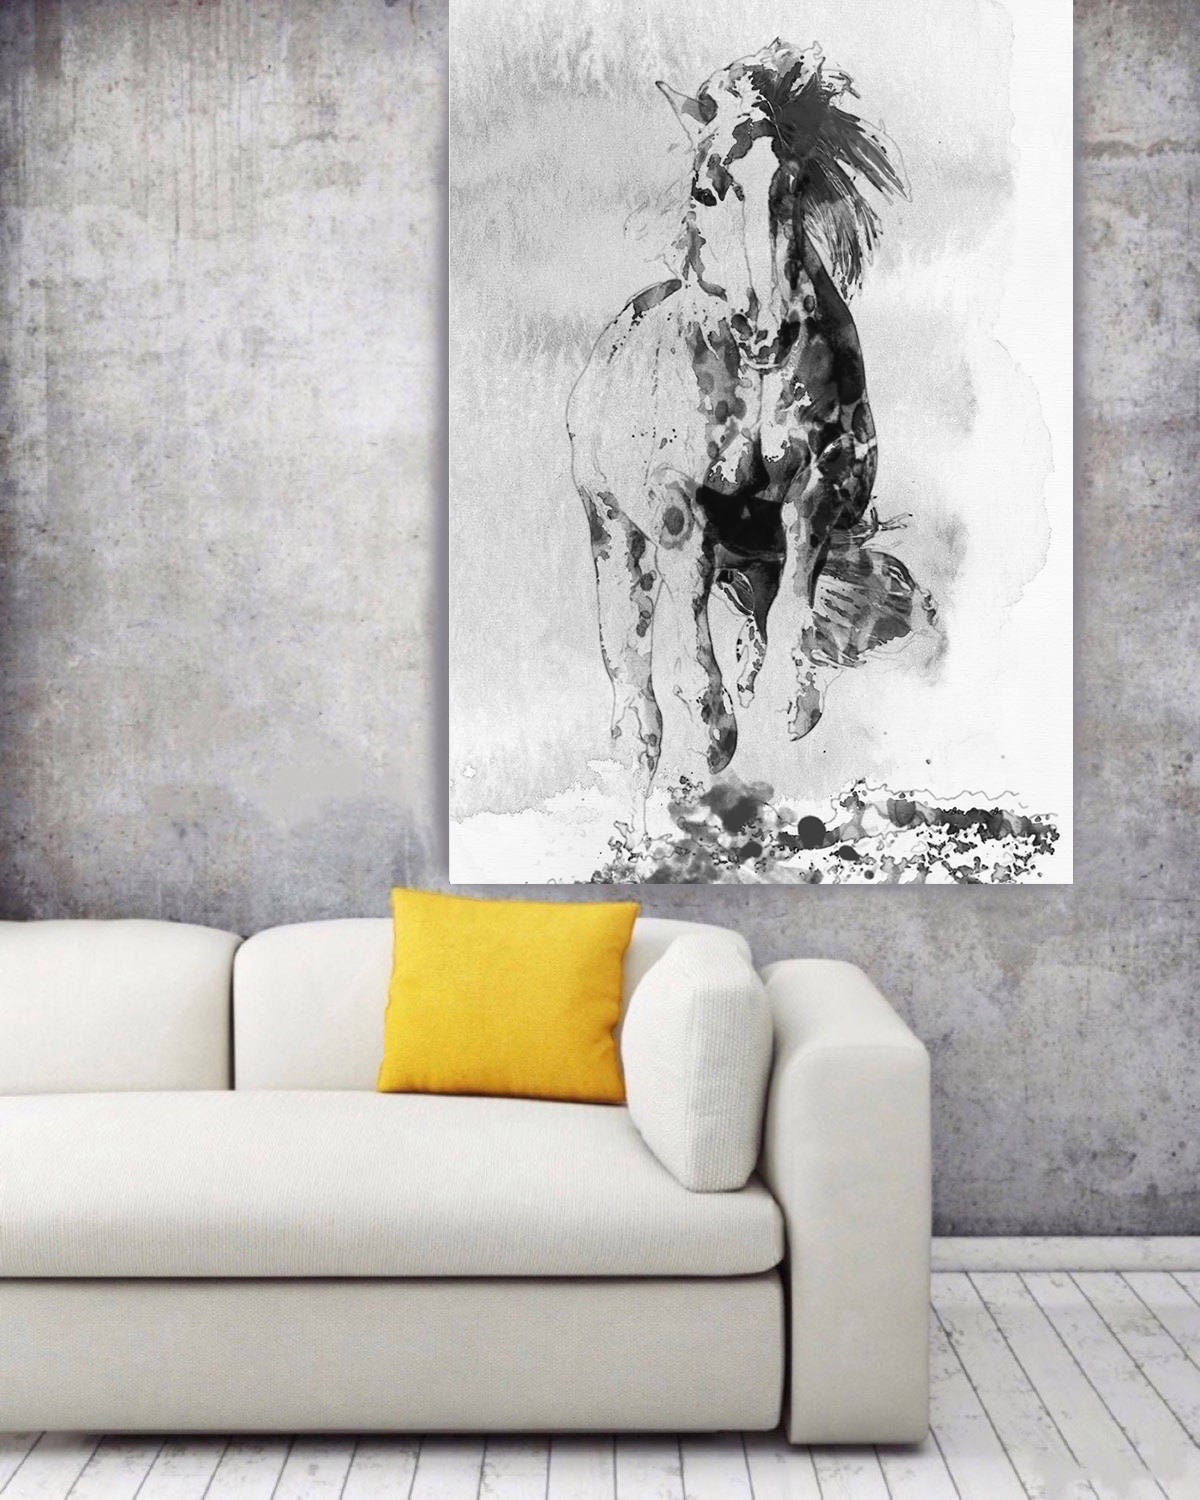 Wild Running Horse 3 Extra Large Horse Wall Decor Black White Horse Painting Large Contemporary Canvas Art Print Up To 72 By Irena Orlov